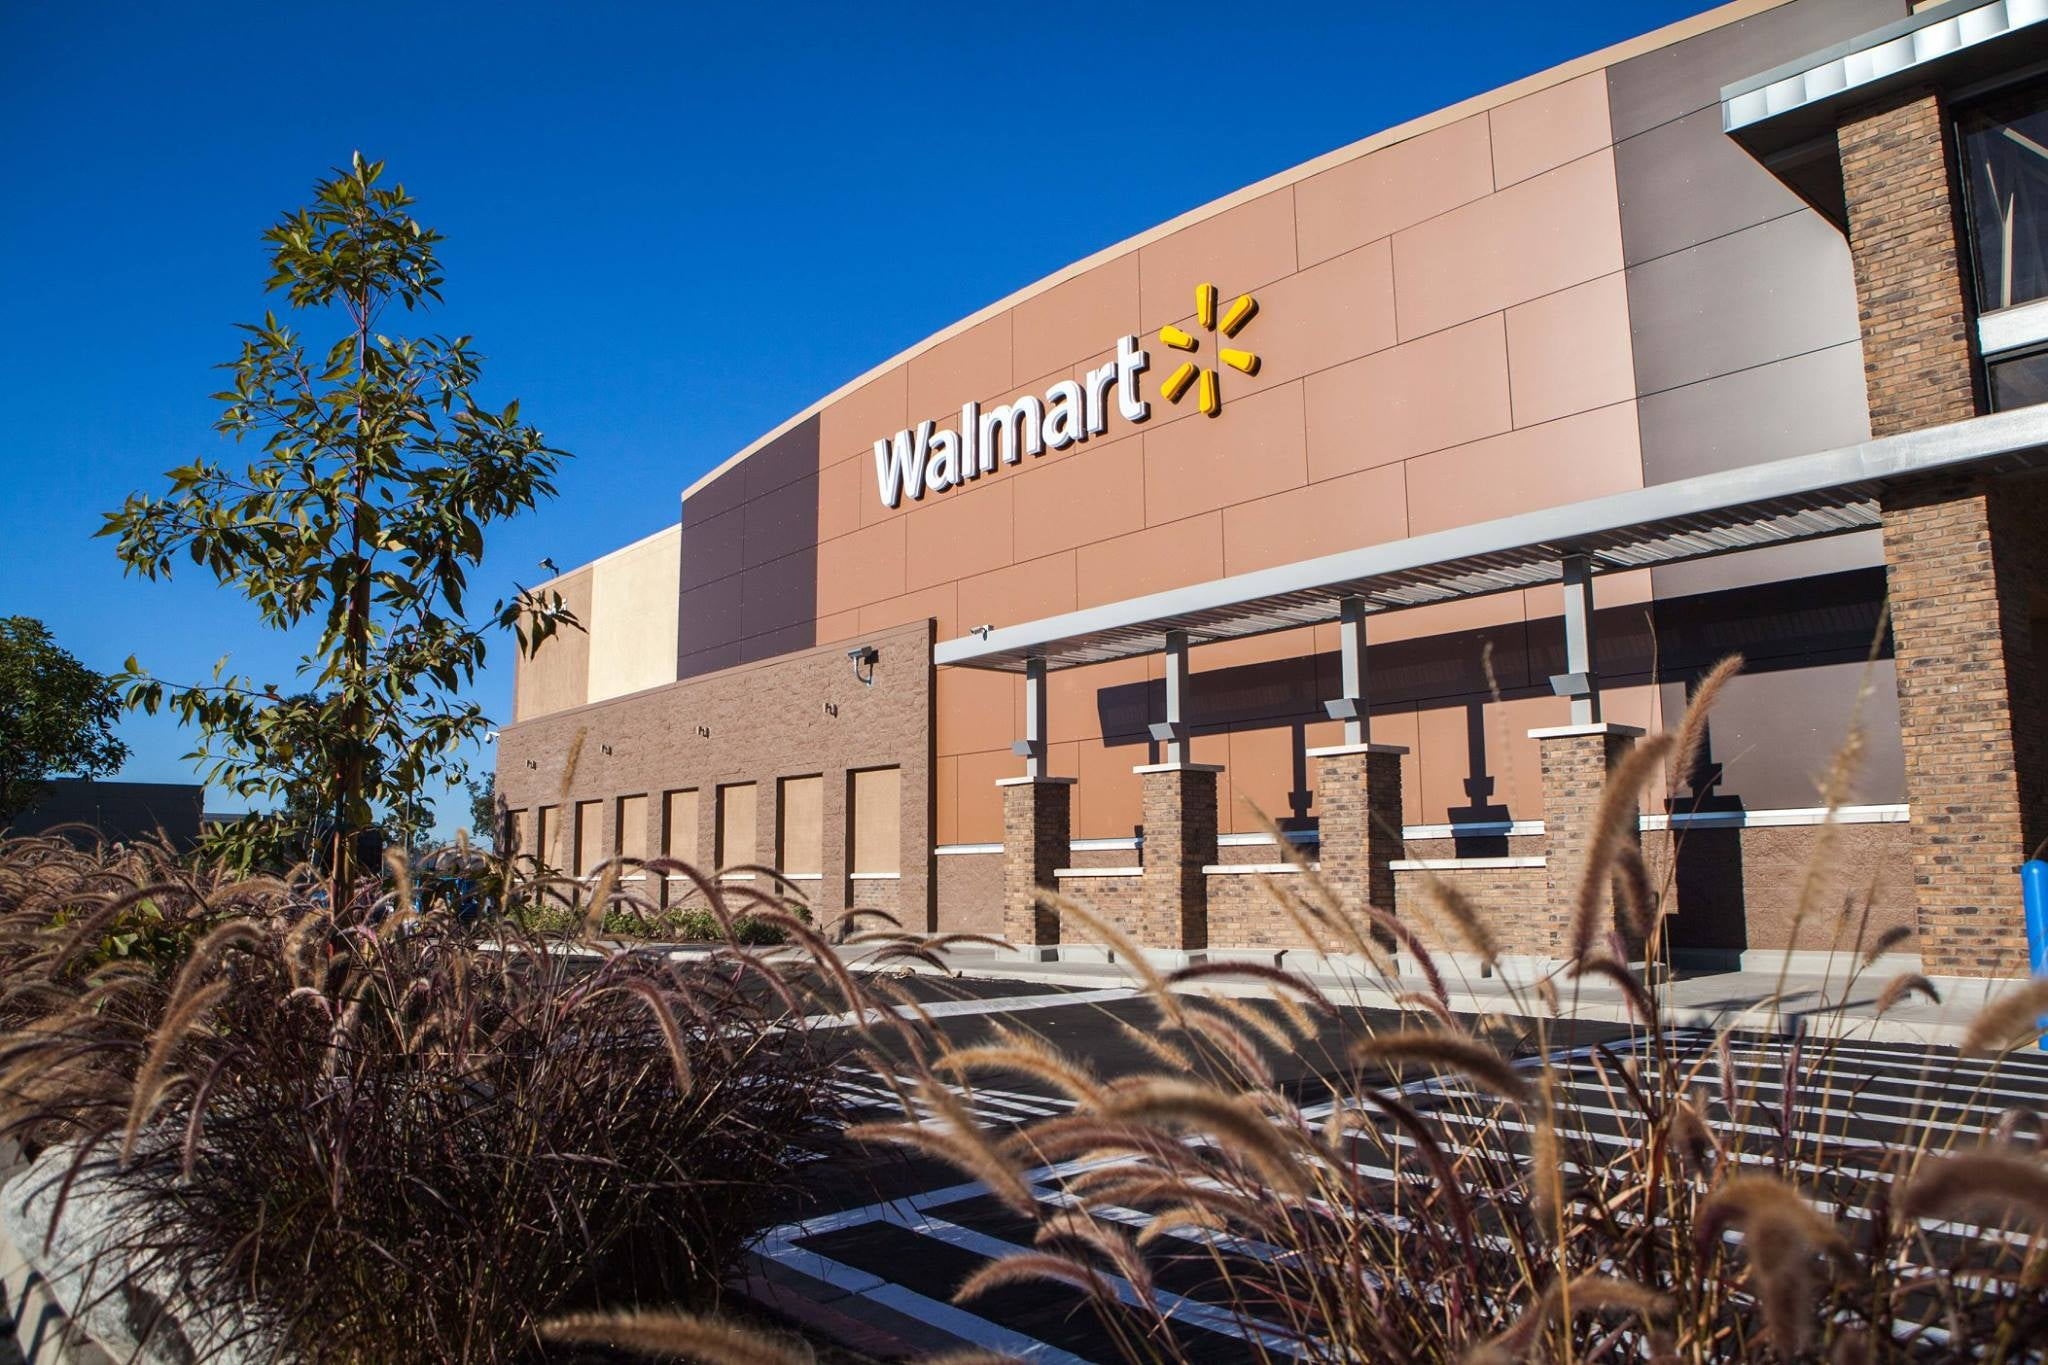 Walmart Will No Longer Sell Handgun Ammo, .223, More; Bans Open Carry